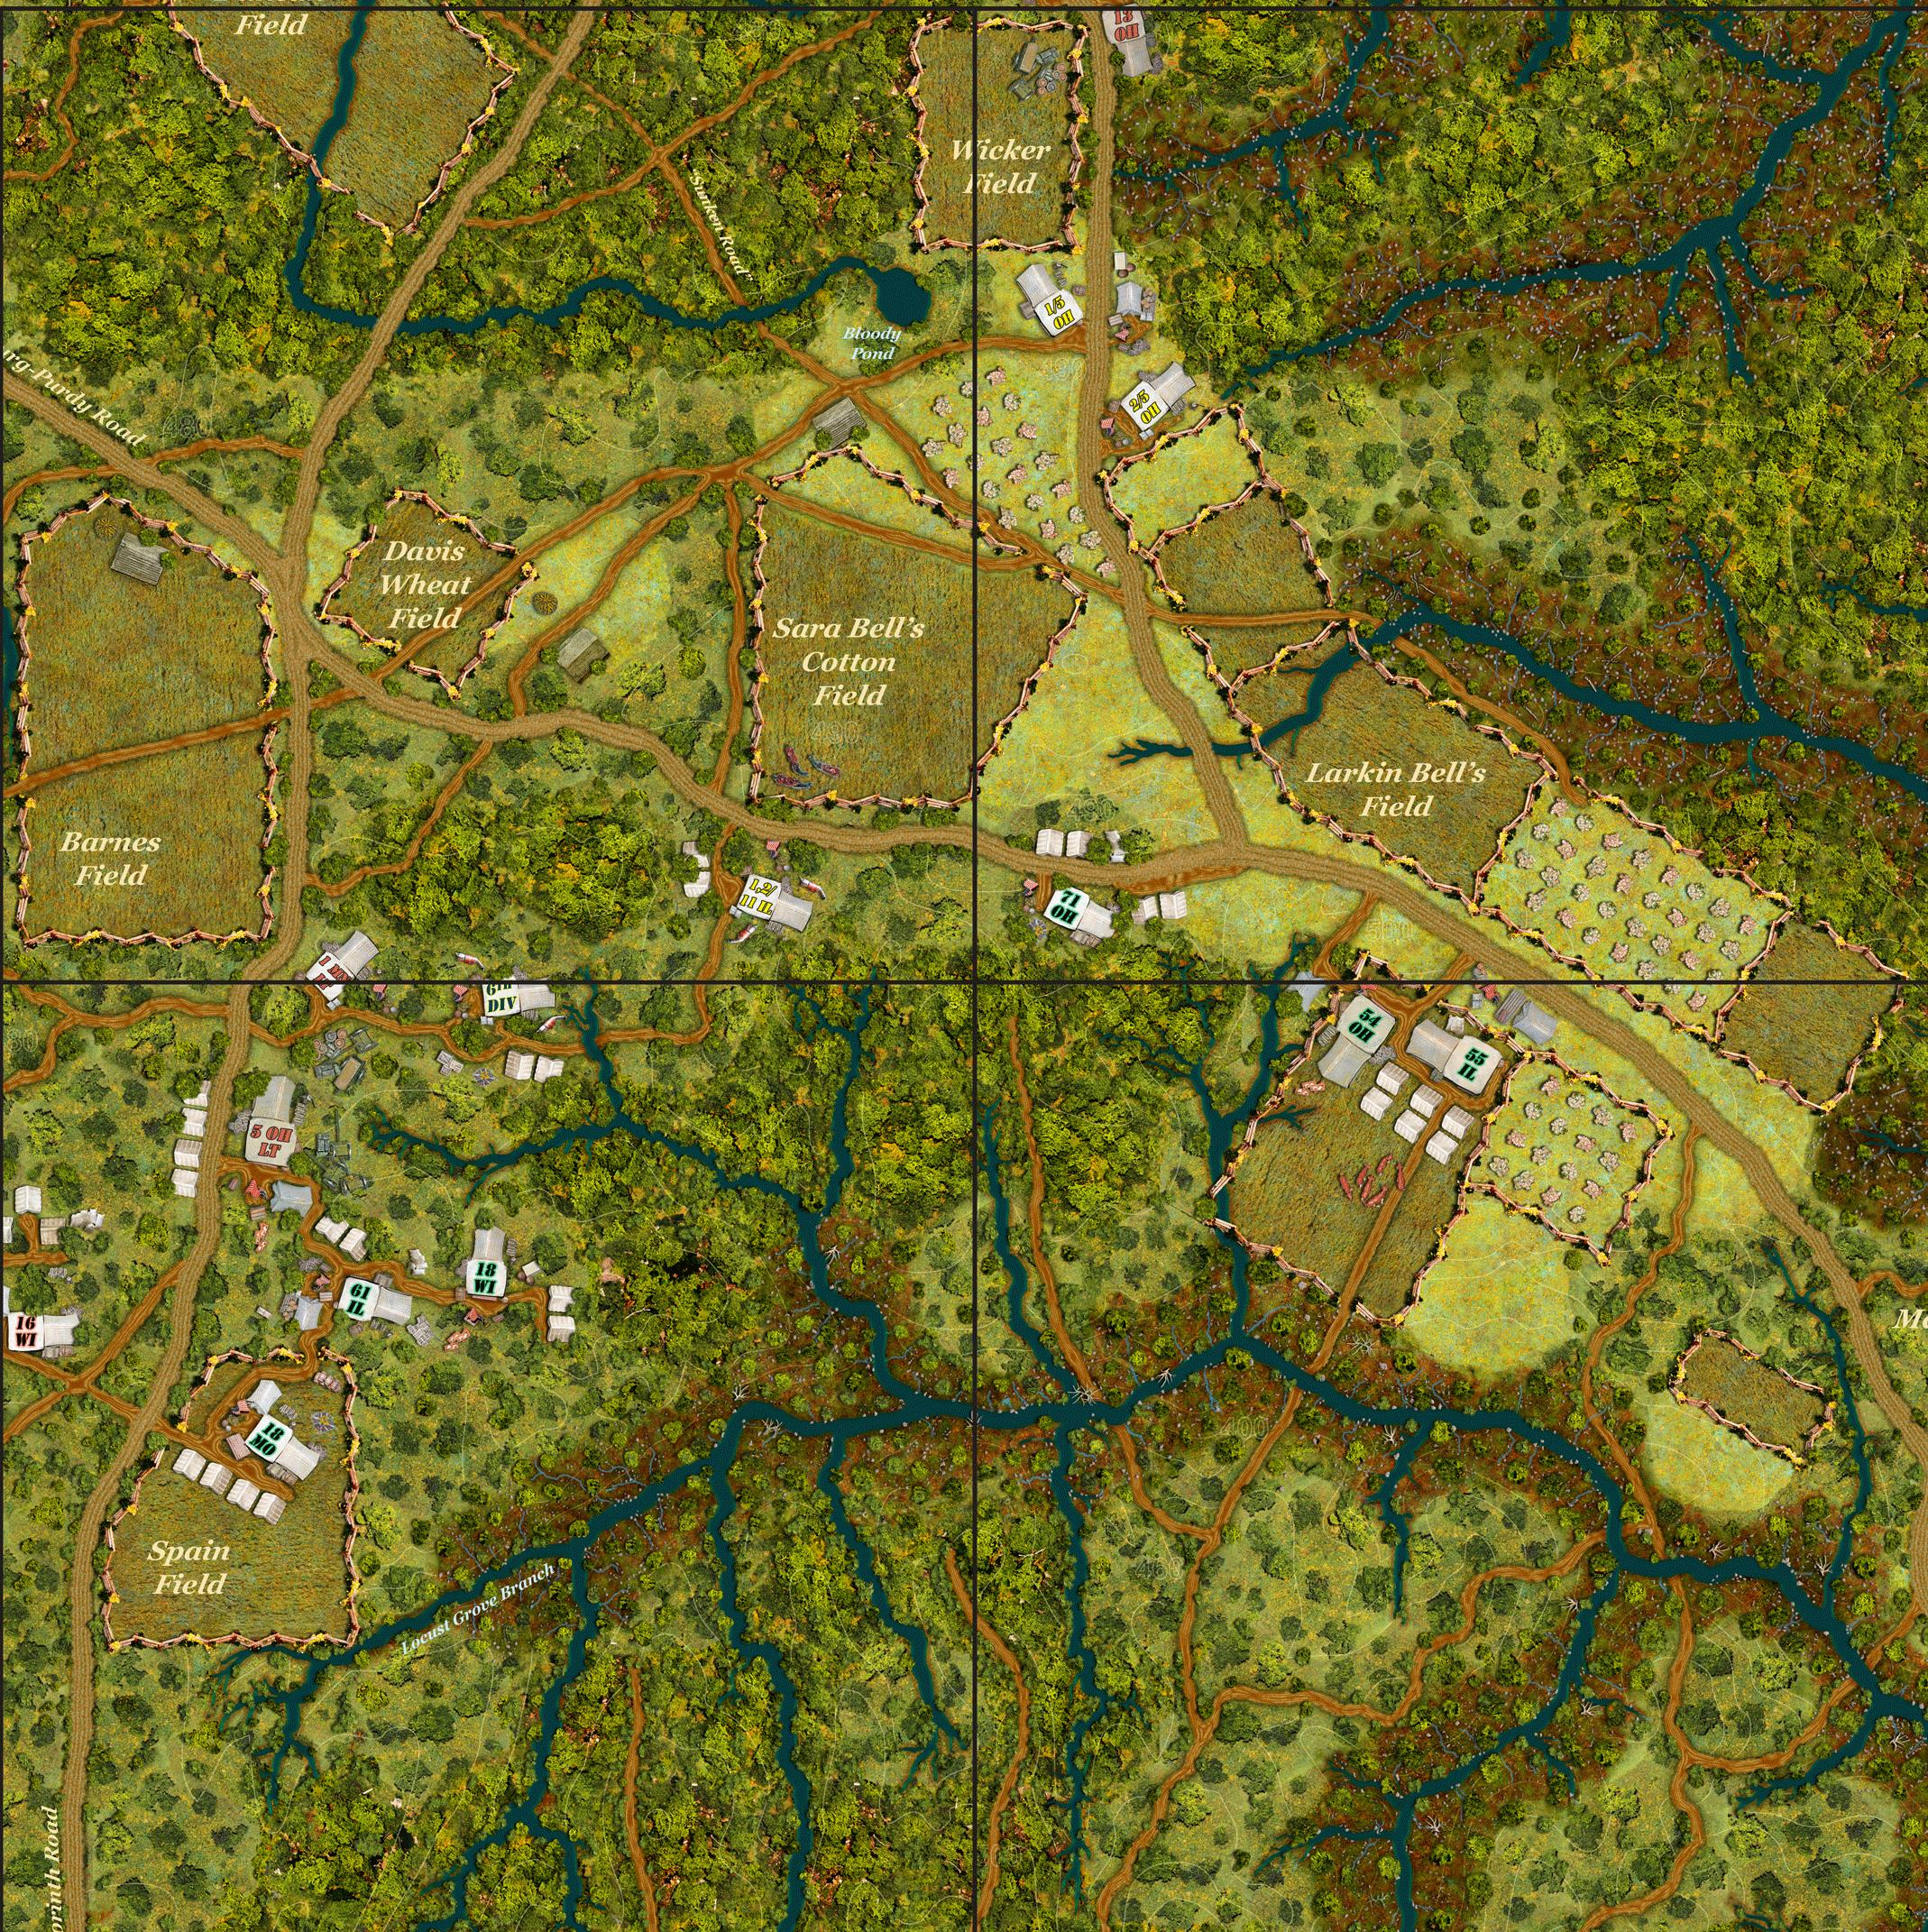 Typical game board of Across a Deadly Fielf